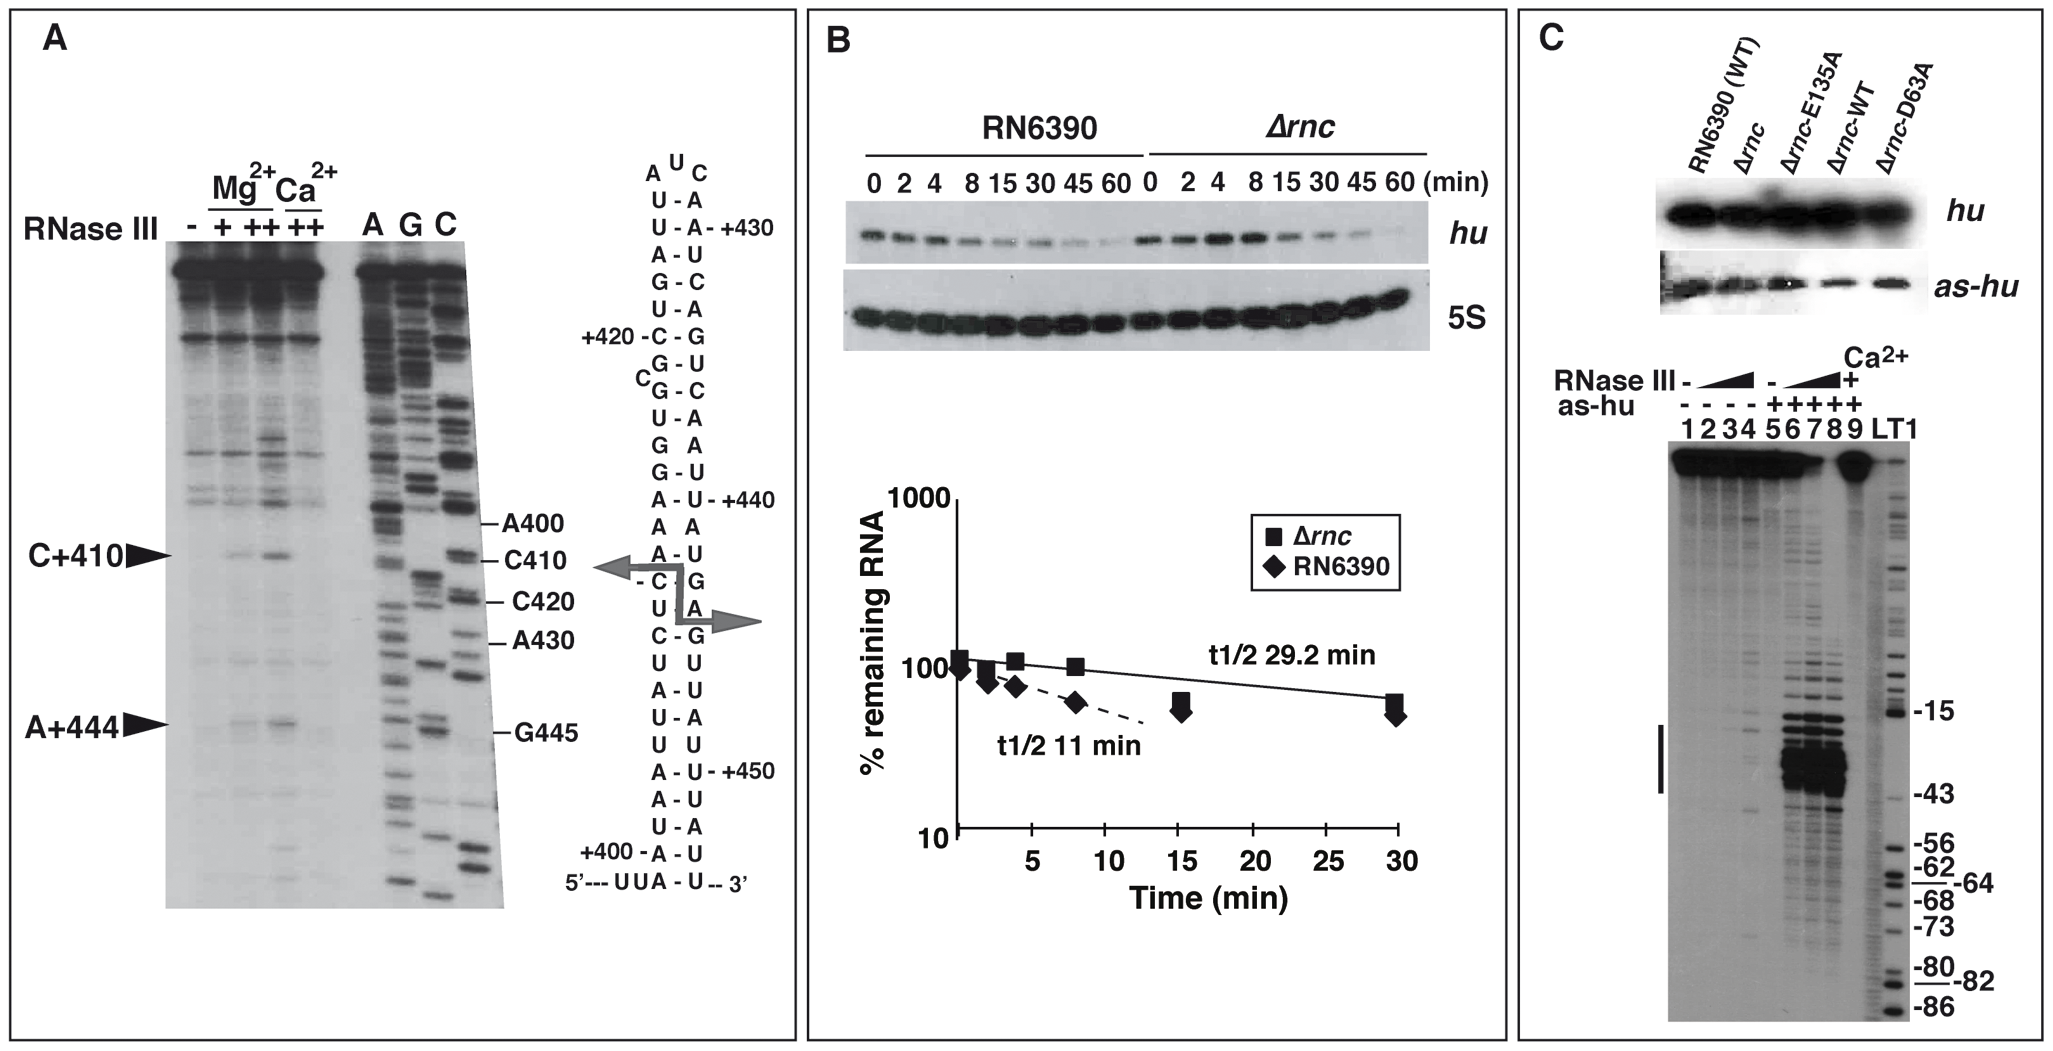 Effect of RNase III on mRNA turnover.